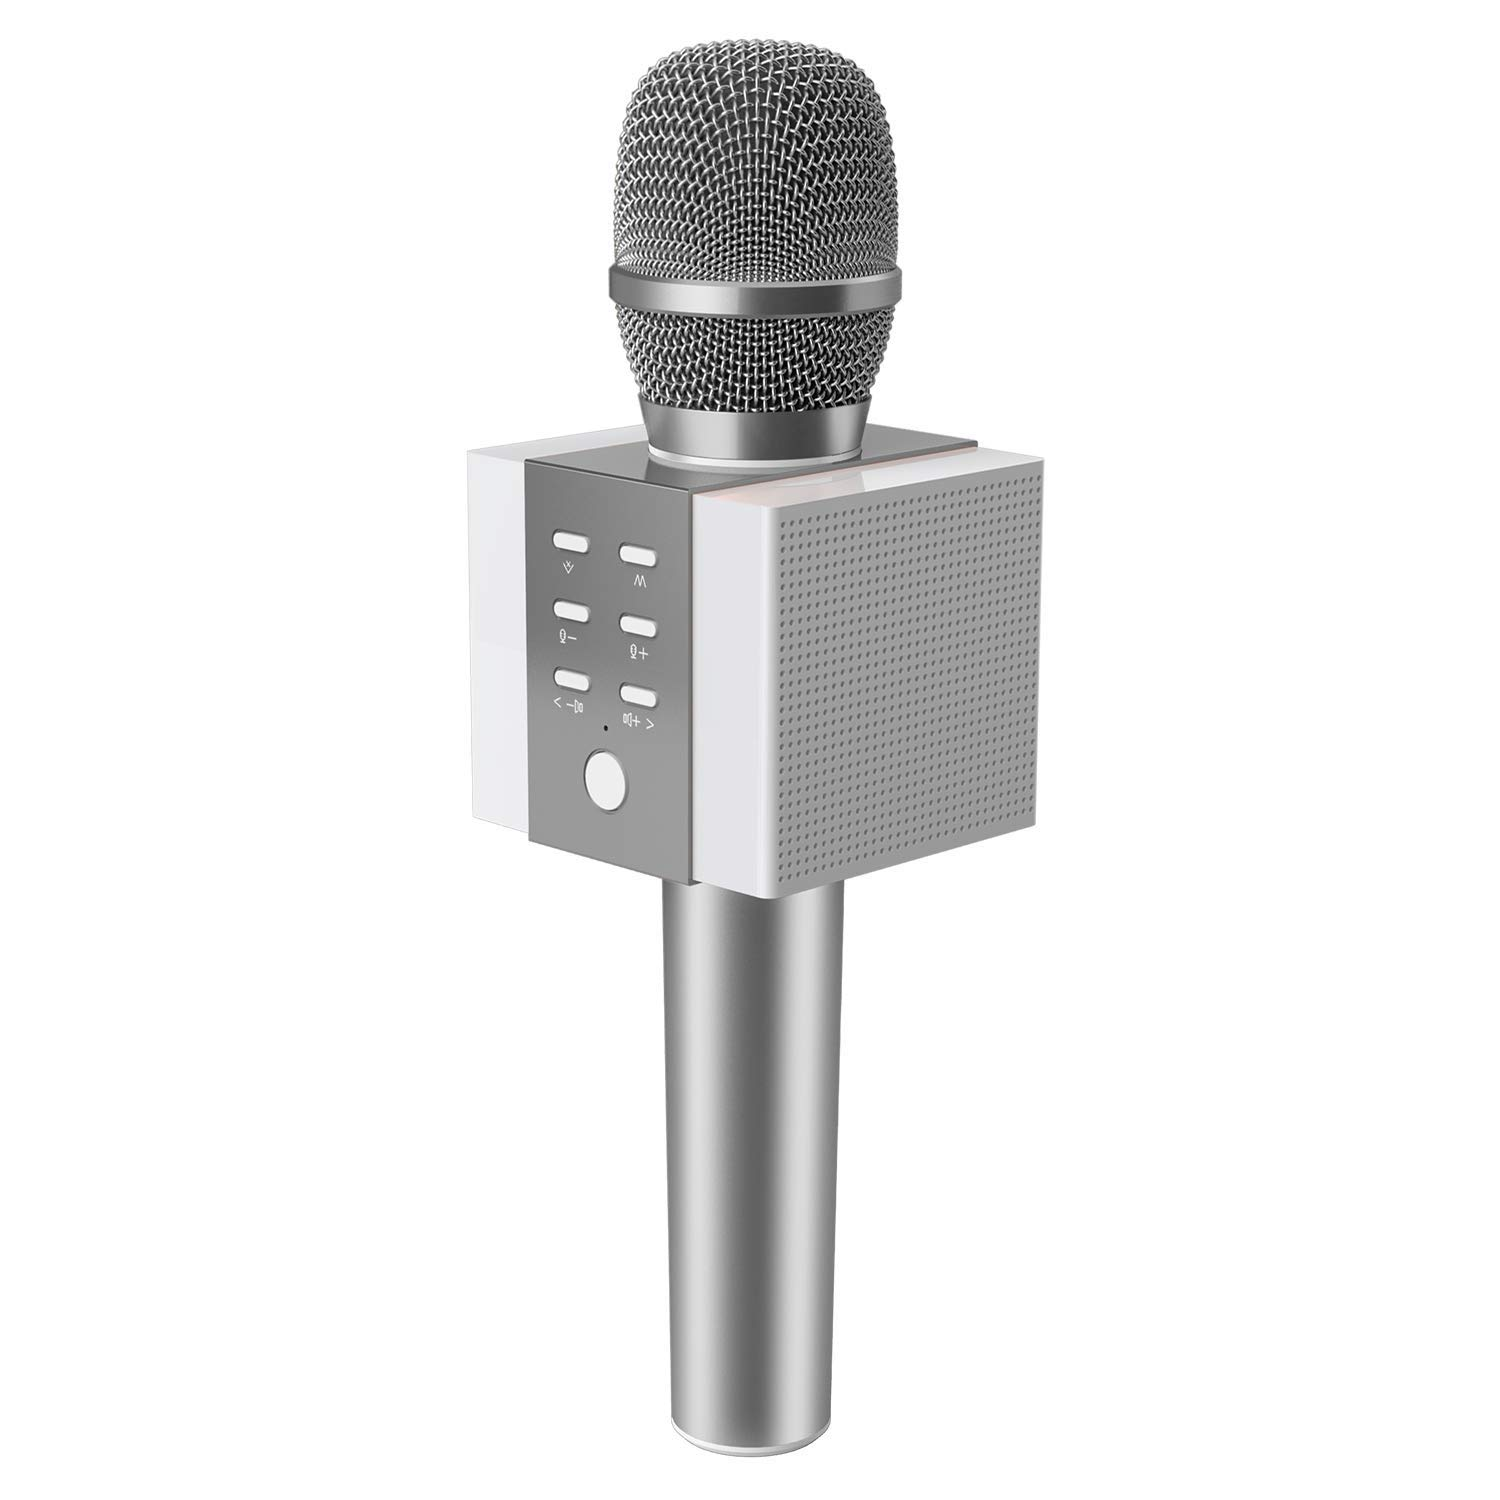 OPcFKV 3-in-1 Handheld Karaoke Microphone,Large Sound Volume 10W Power, More Bass Dual Speaker Microphone Suitable for iPhone Android Smartphone Or PC, Karaoke Microphone by OPcFKV